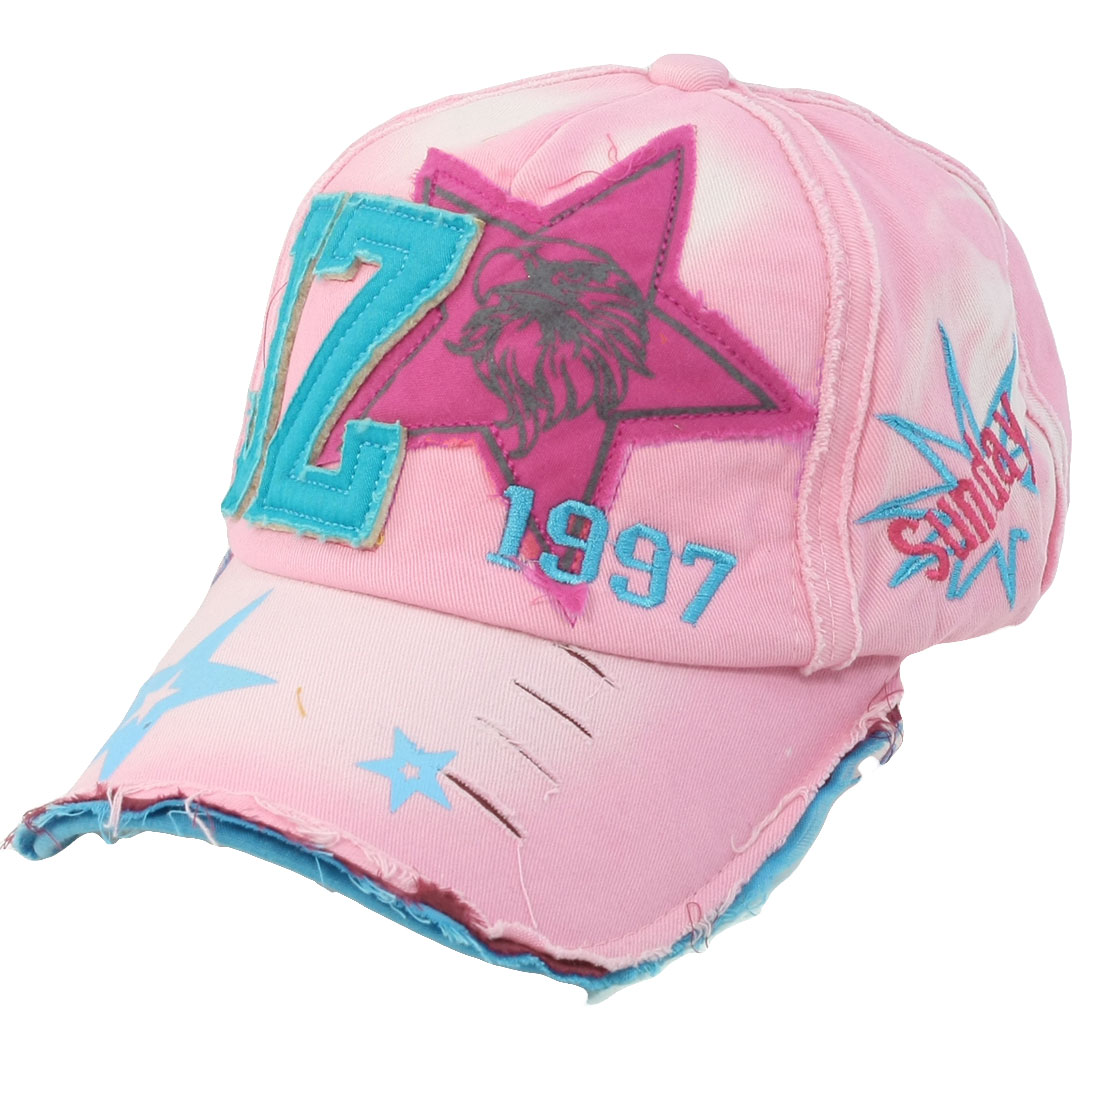 Letter Star Decor Visor Closed Sport Baseball Hat Pink Green Red for Girl